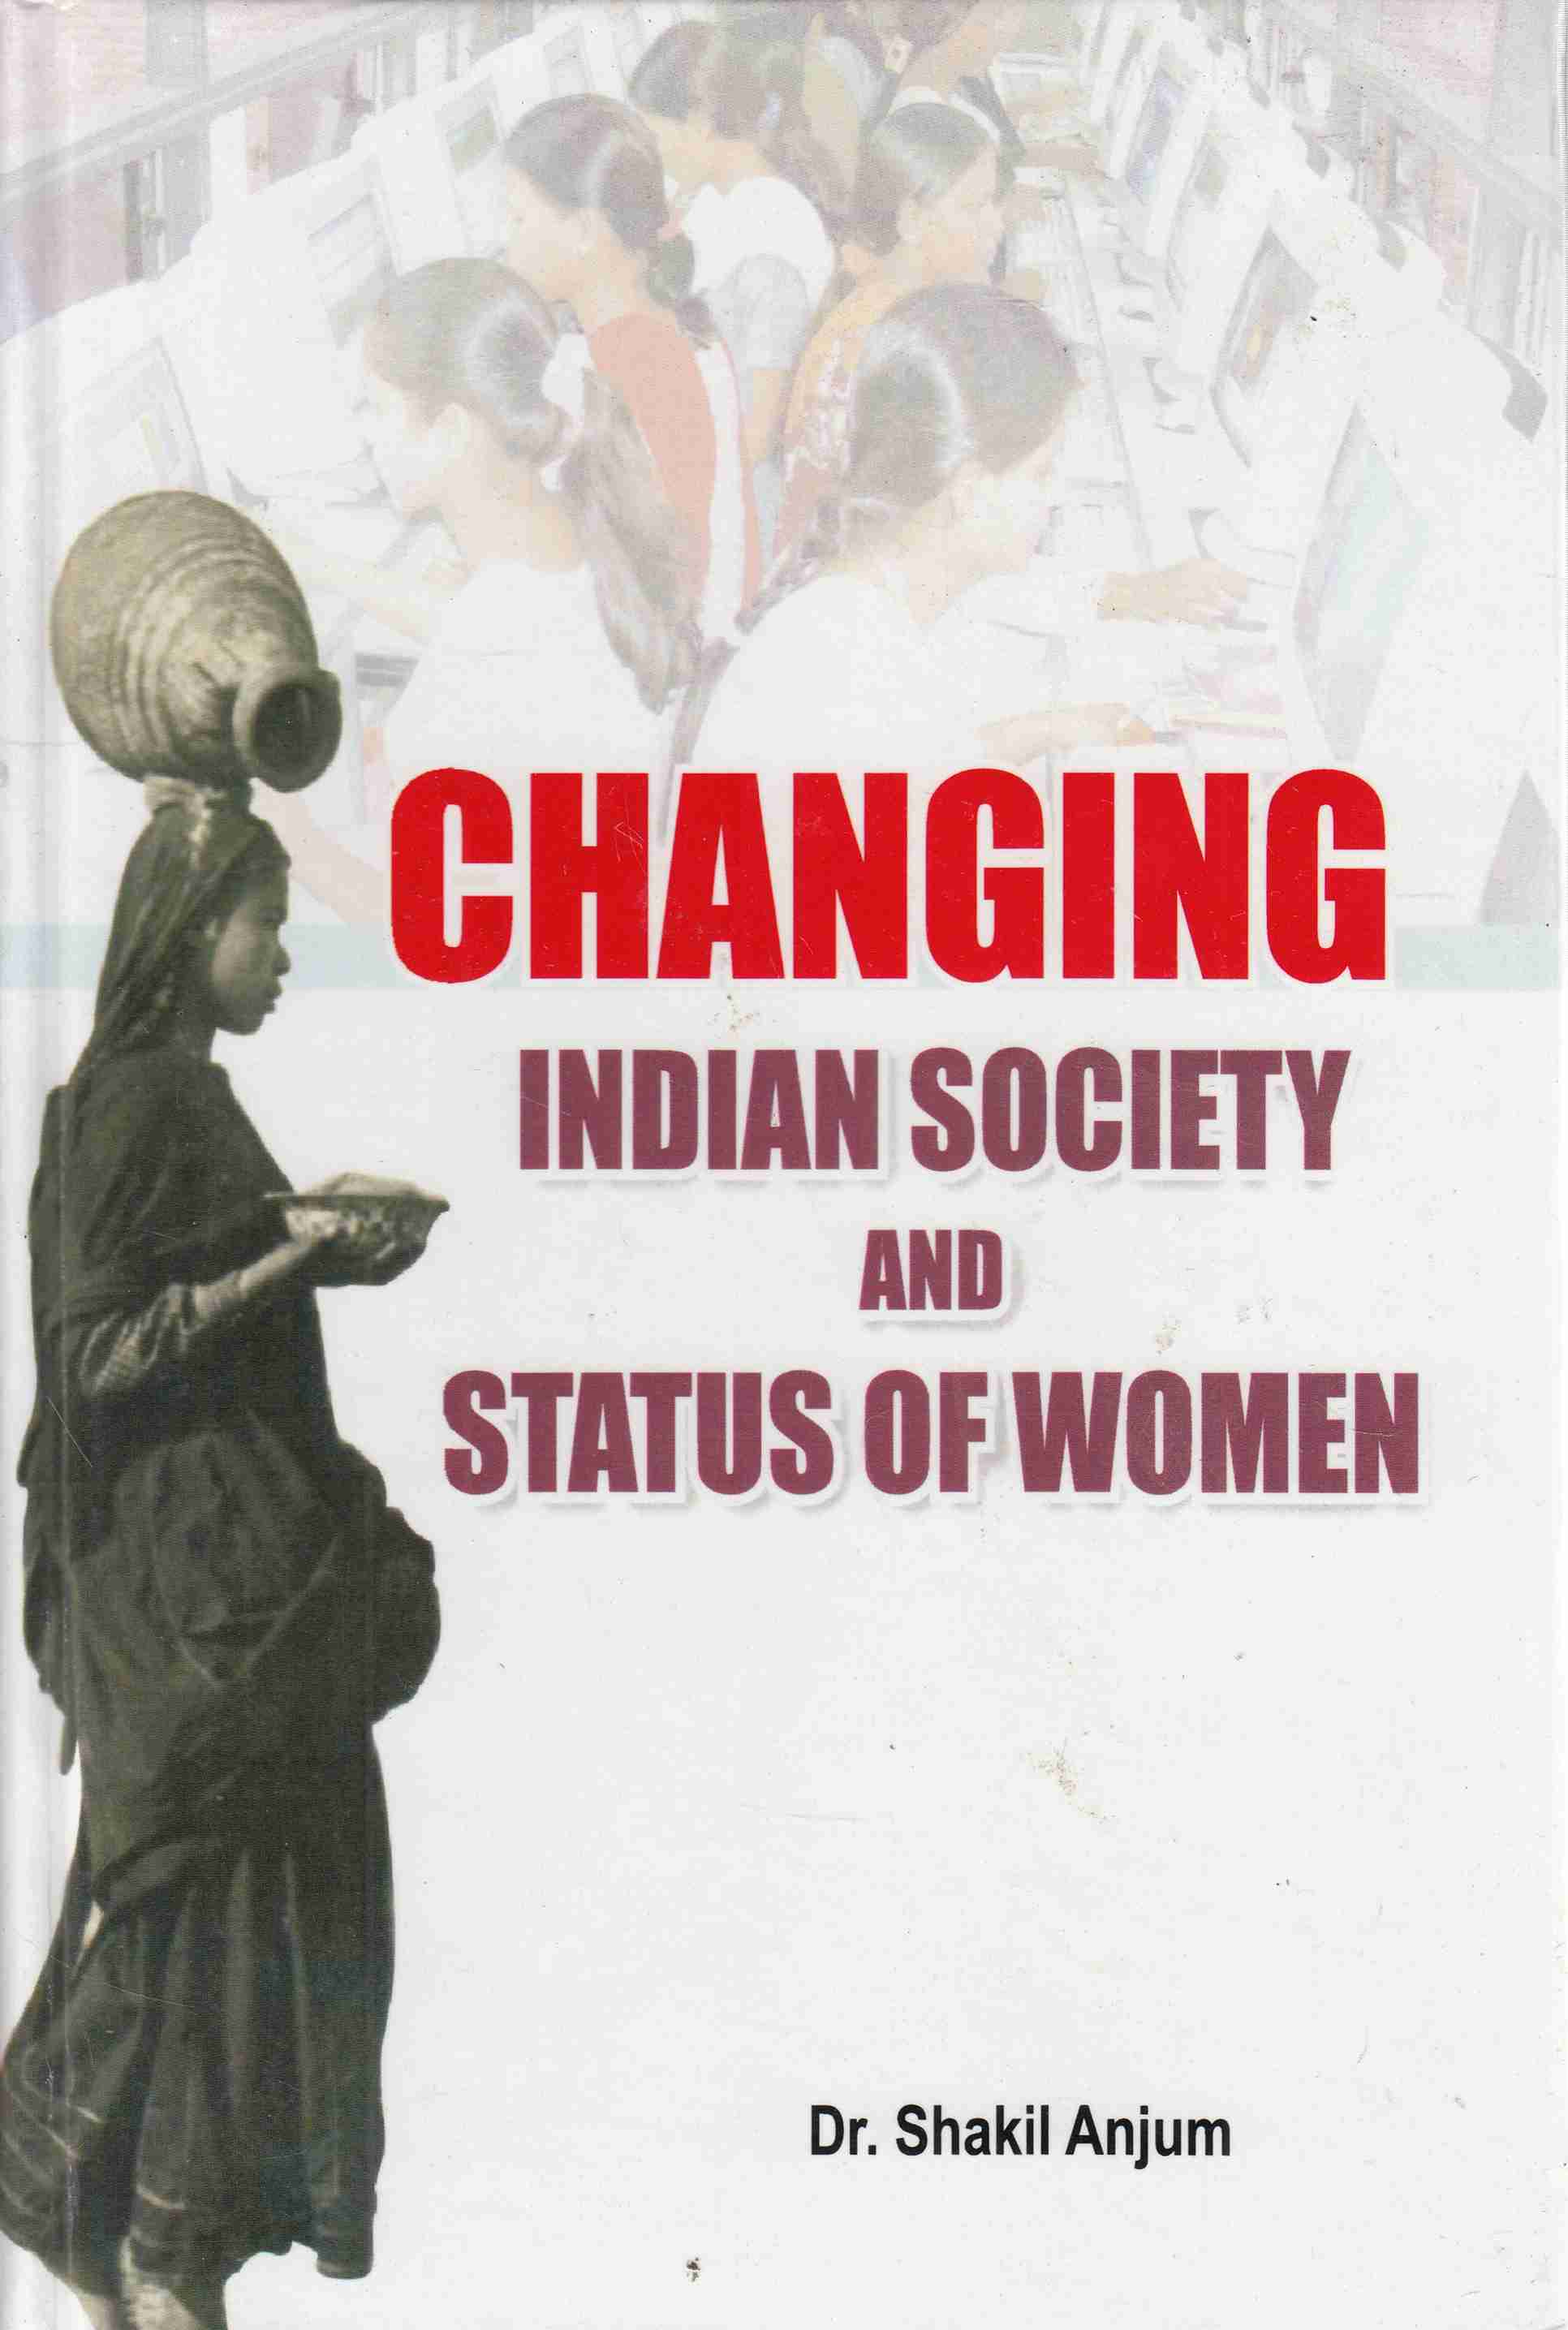 status women india The status of women in india in  more about the status of women in india in the past, present and future essays  present status of women entrepreneurship in india.